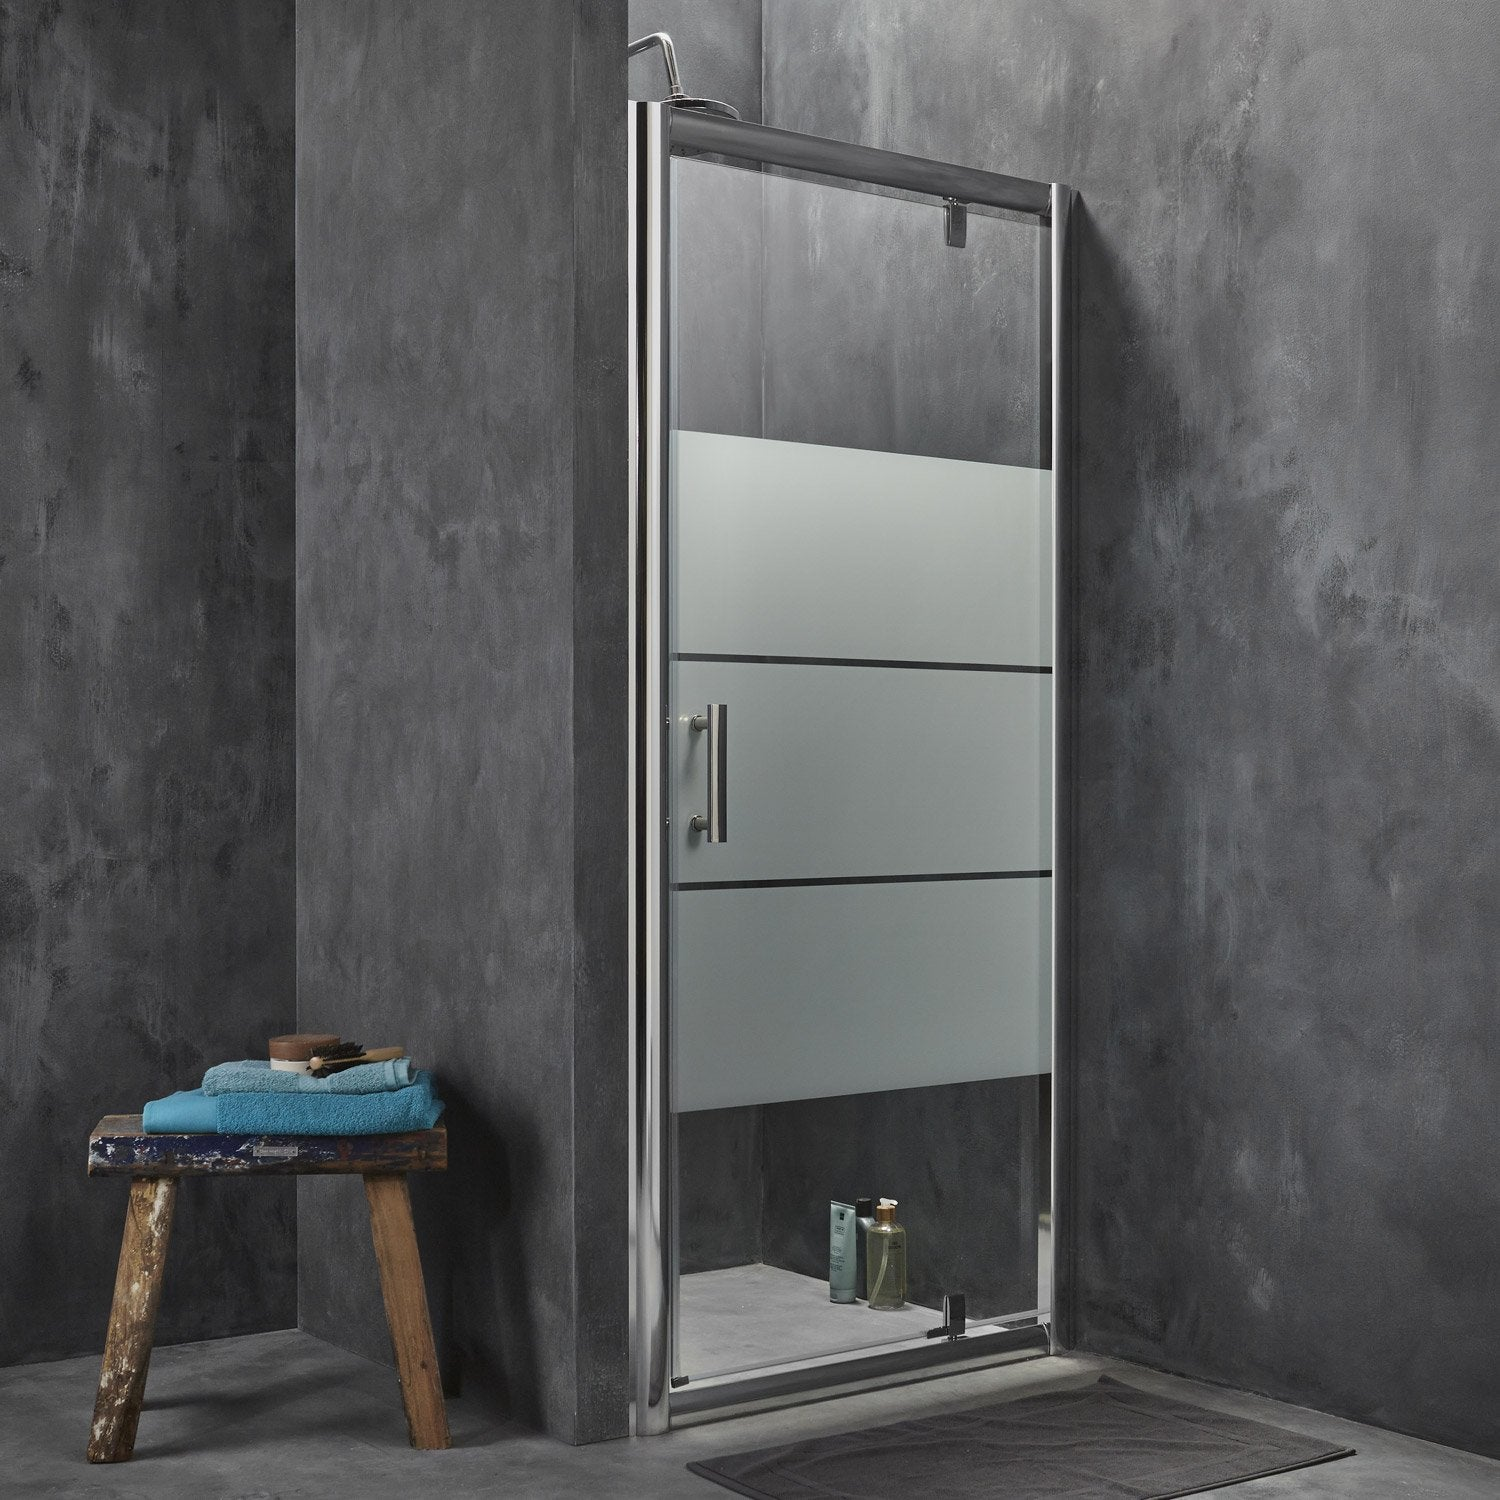 Porte de douche pivotante optima2 leroy merlin for Portes de douche leroy merlin